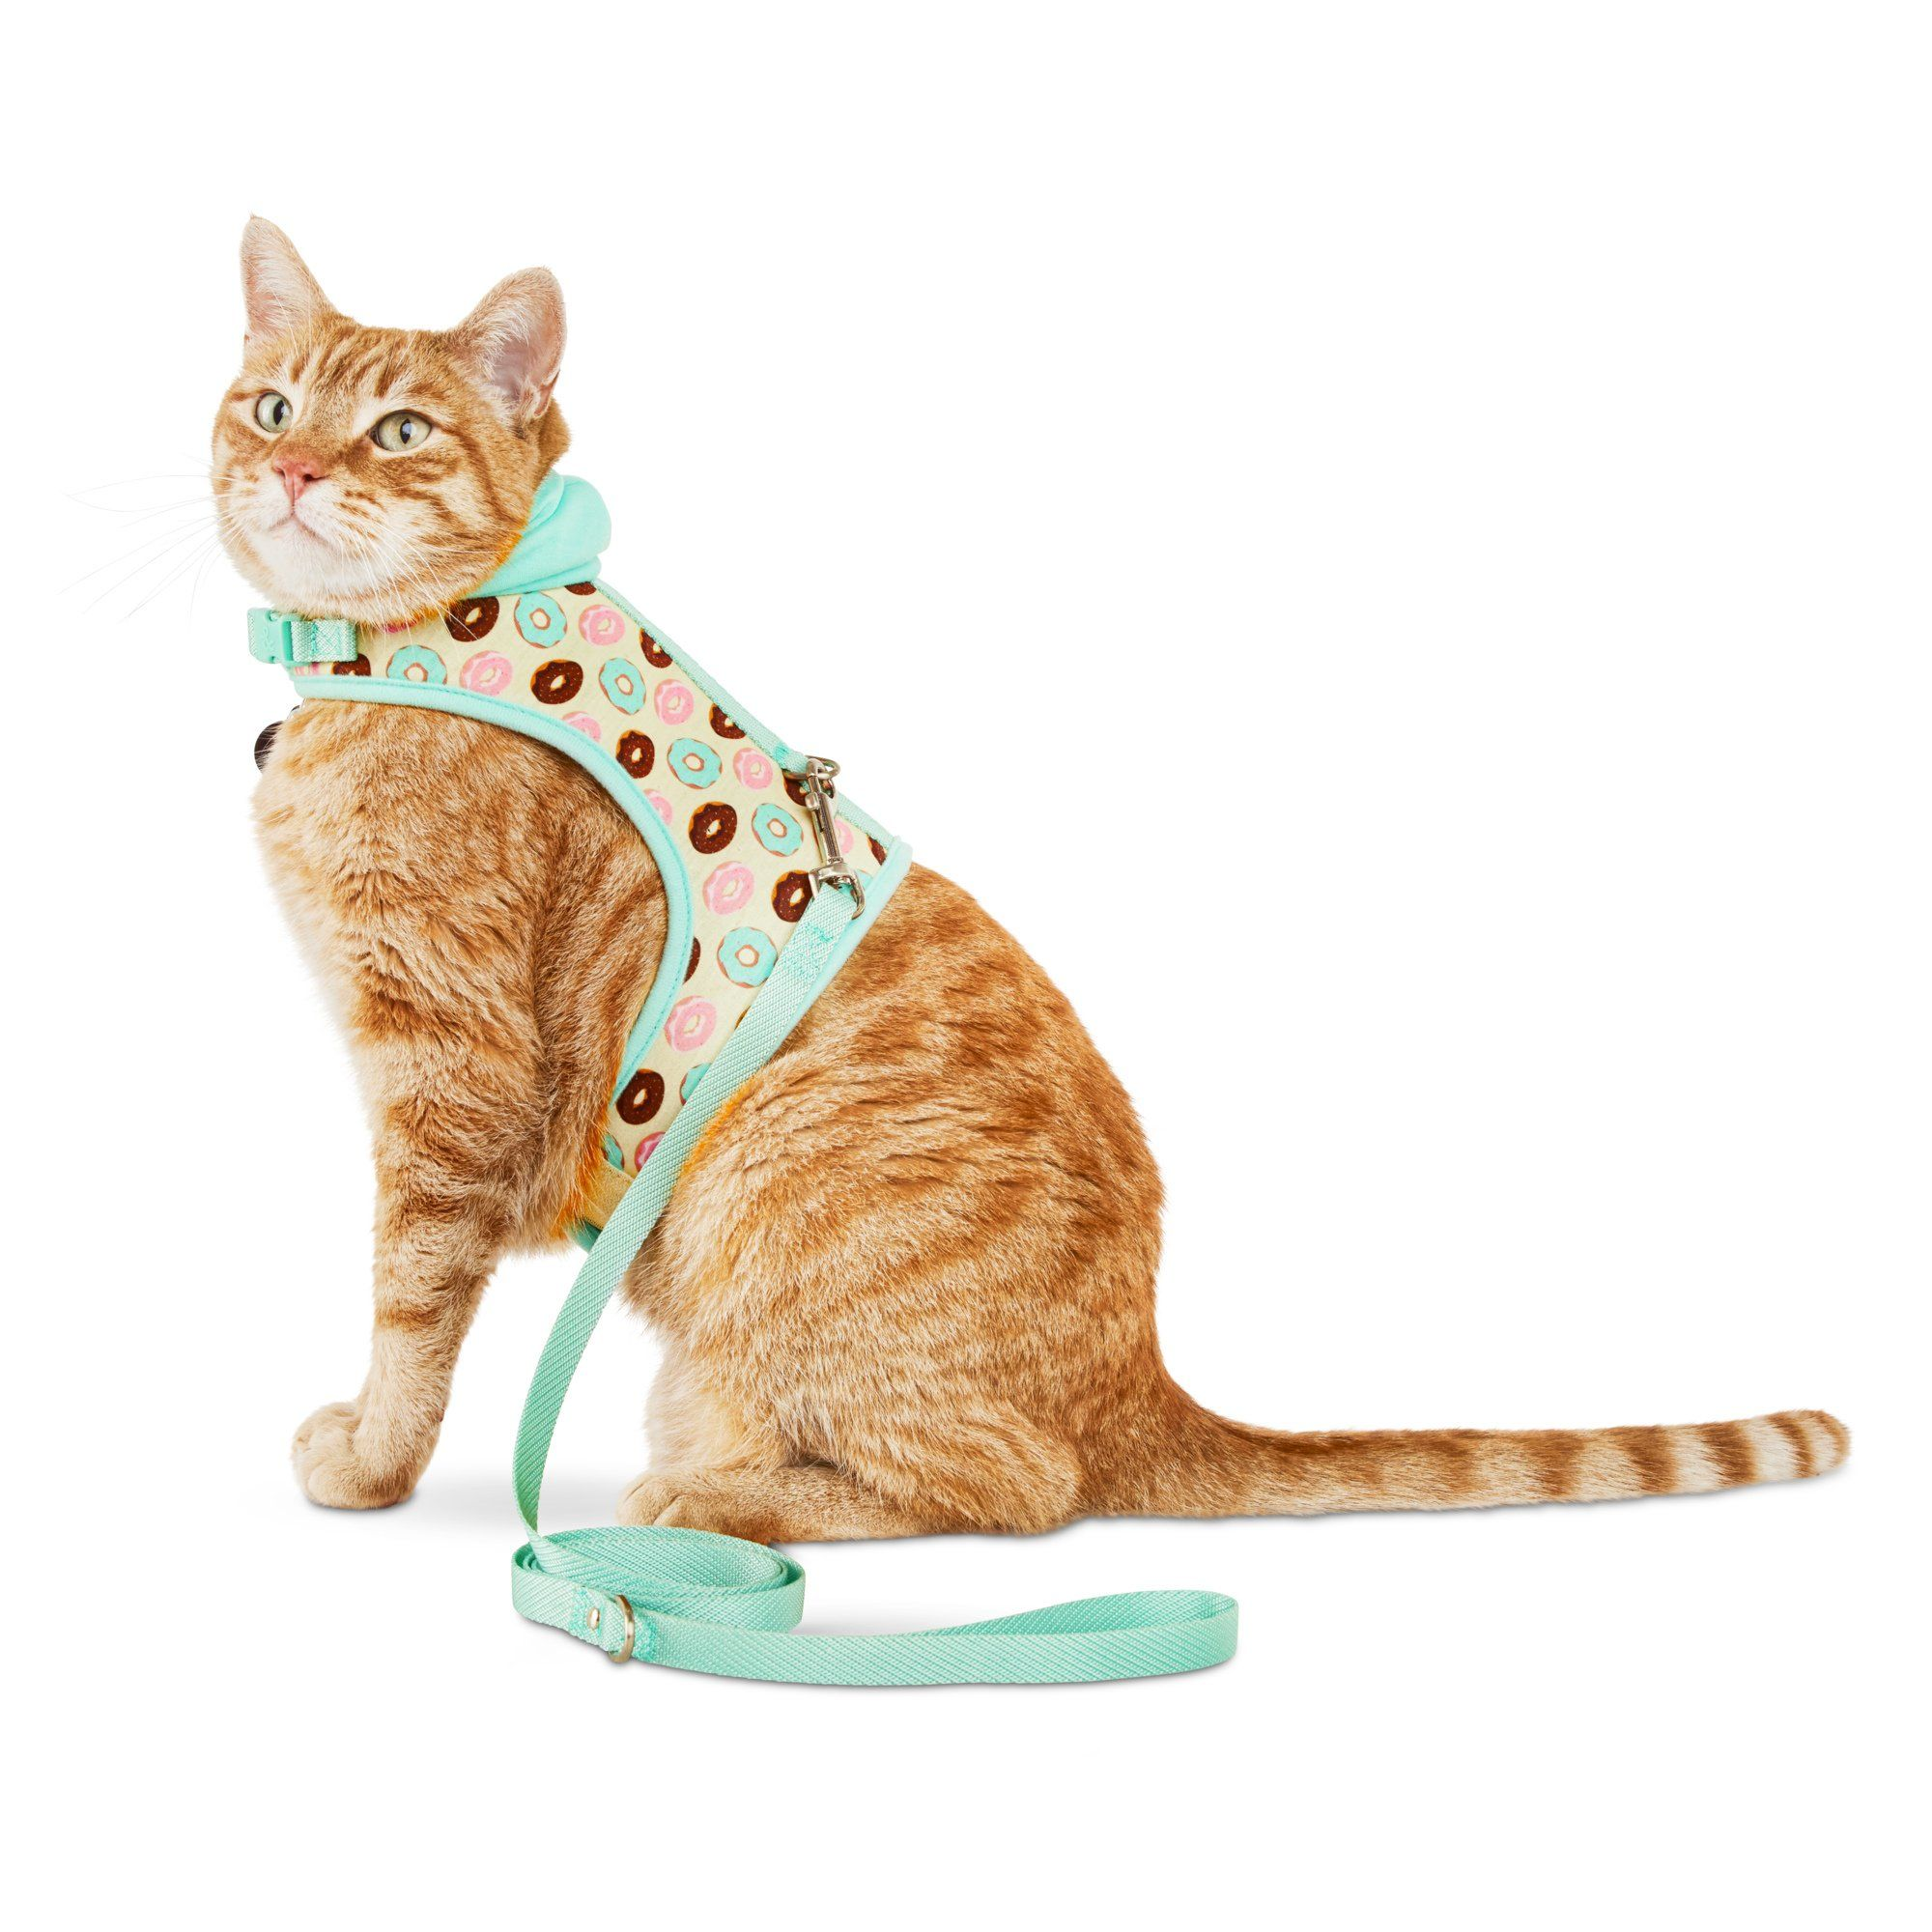 Bond Co Donut Print Hooded Cat Harness And Leash Set Petco Cat Harness Cat Leash Petco